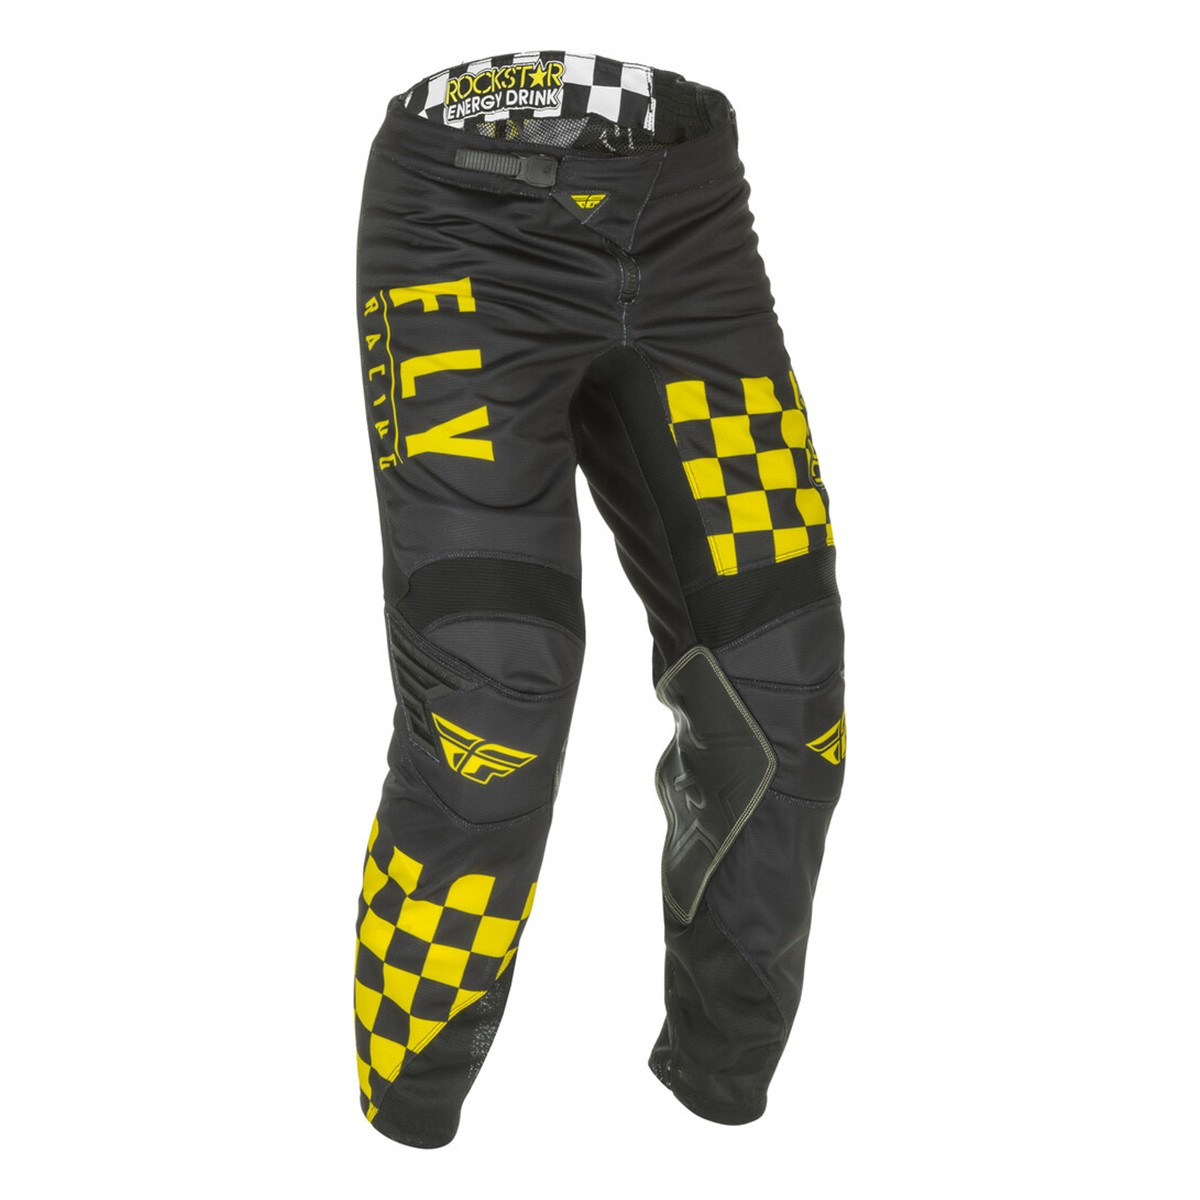 FLY KINETIC MESH ROCKSTAR 2021 PANTS